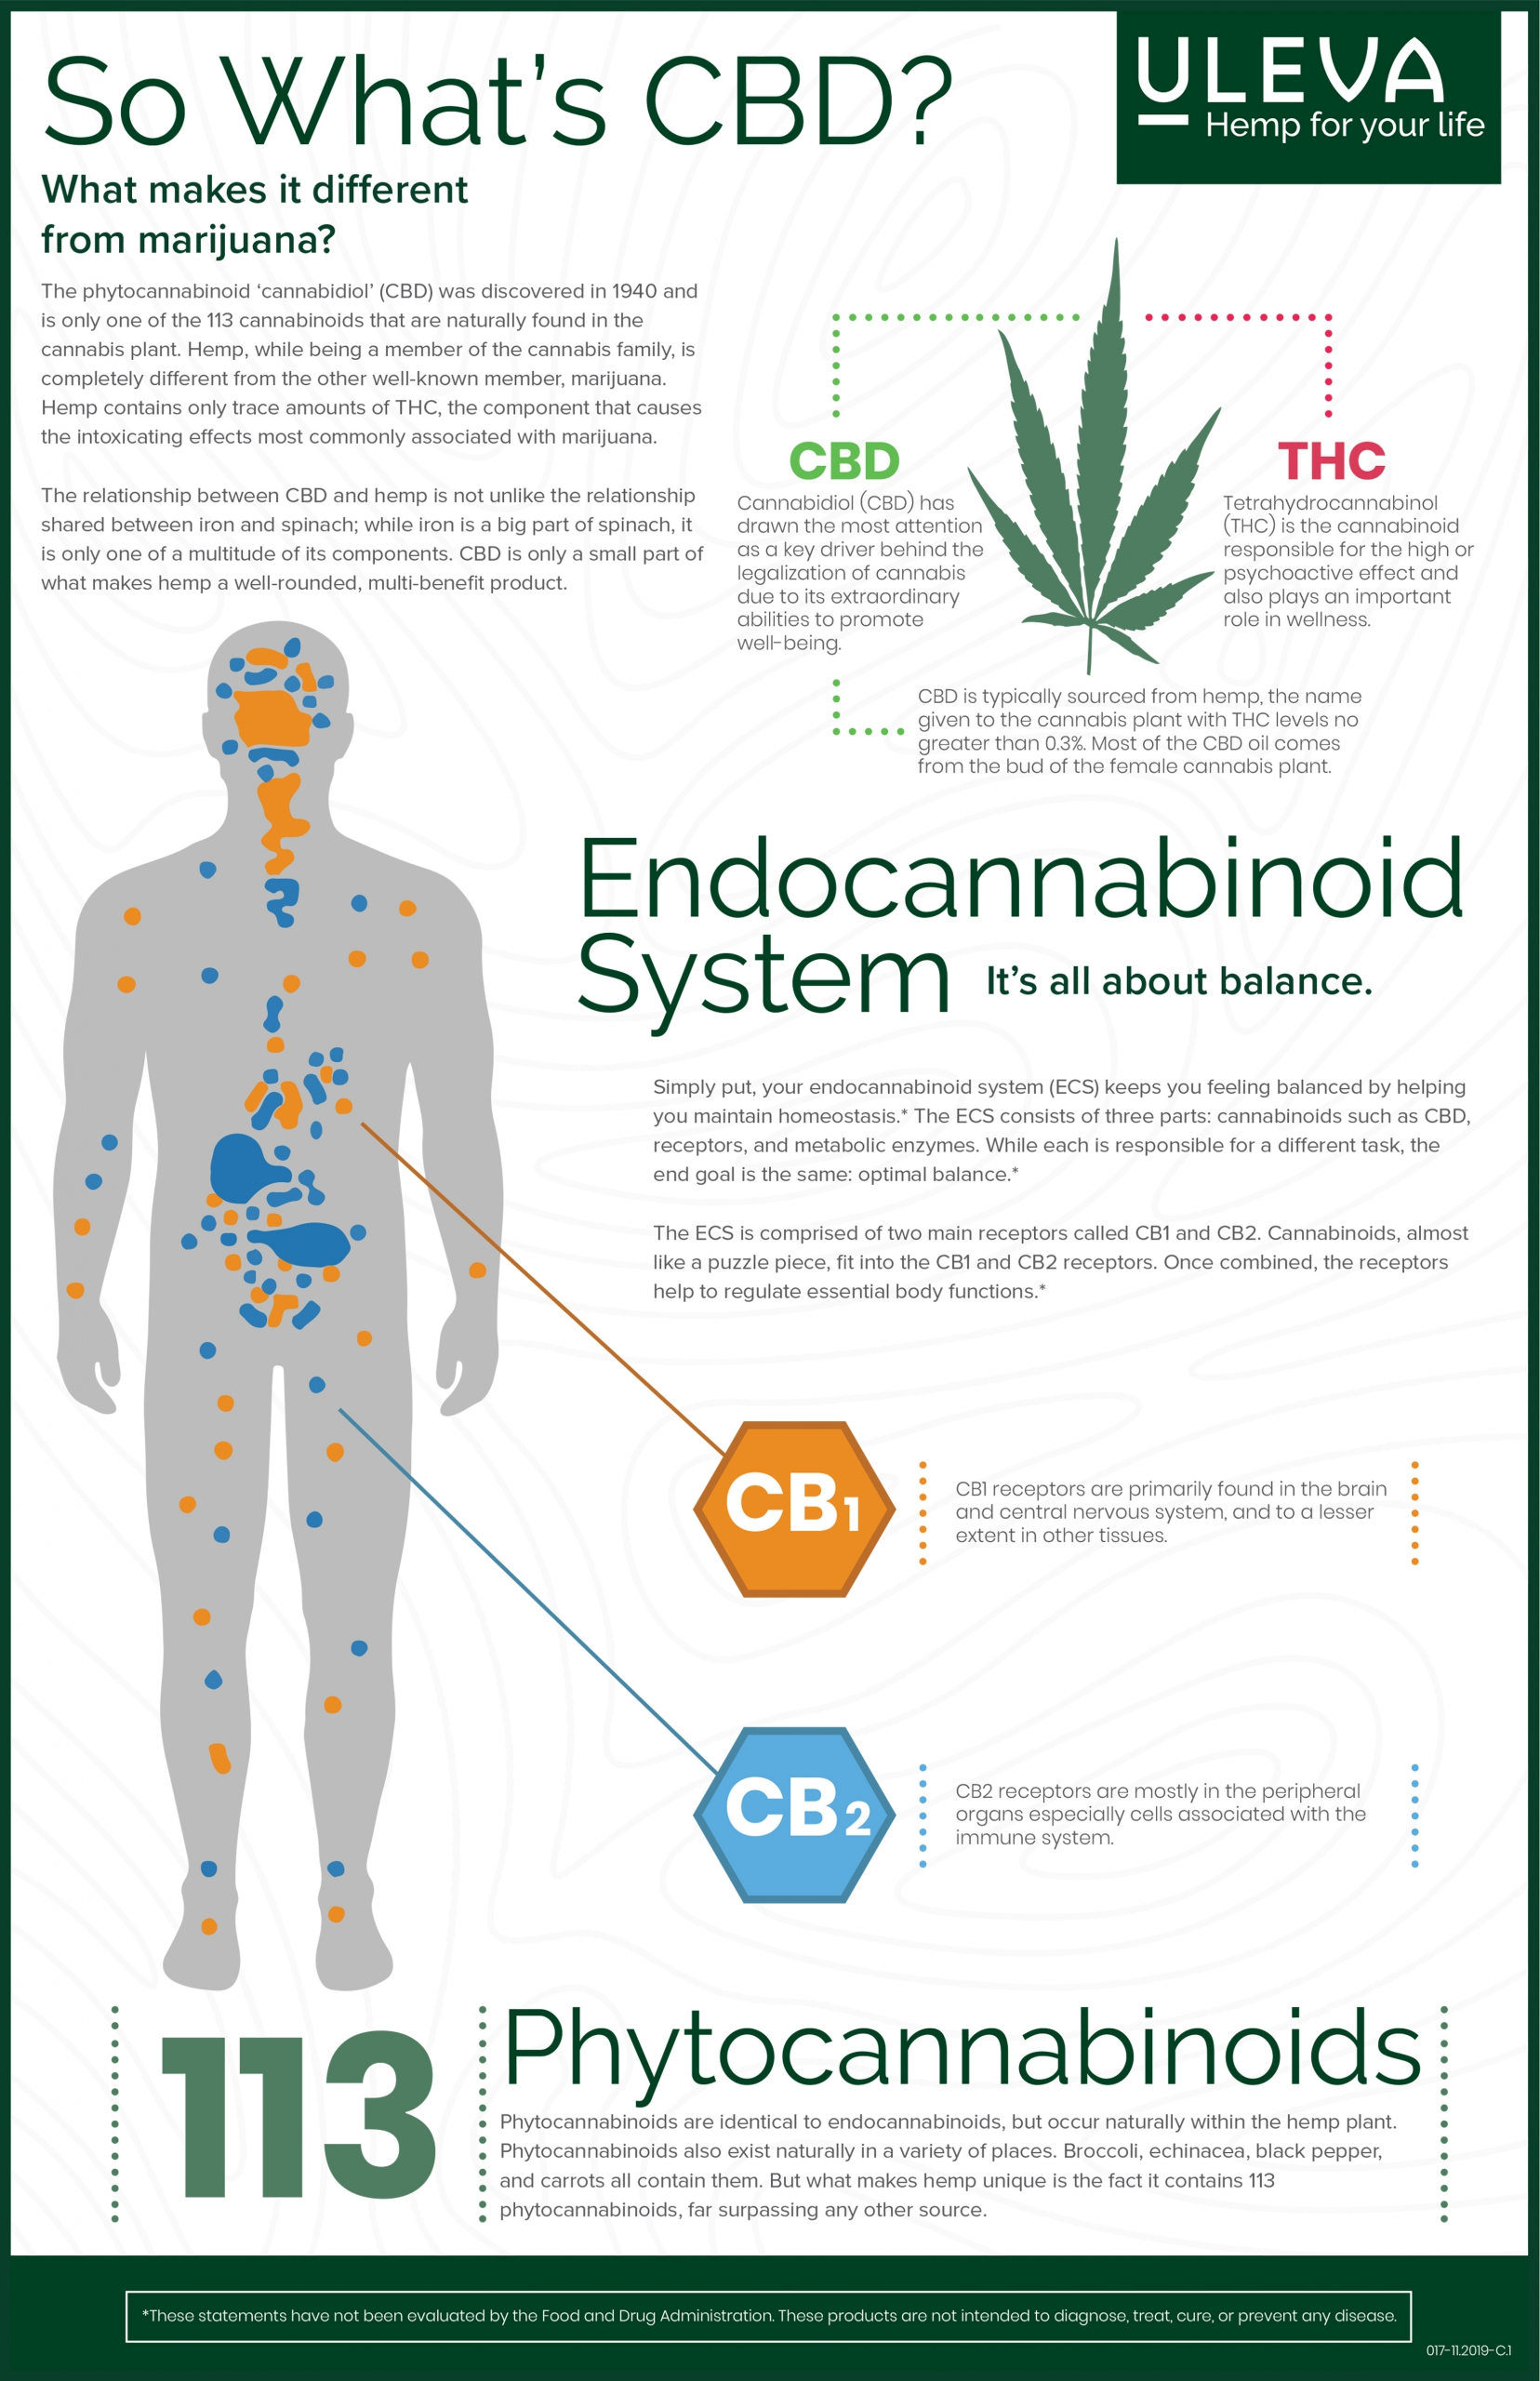 Endocannabinoid System 101 Infographic